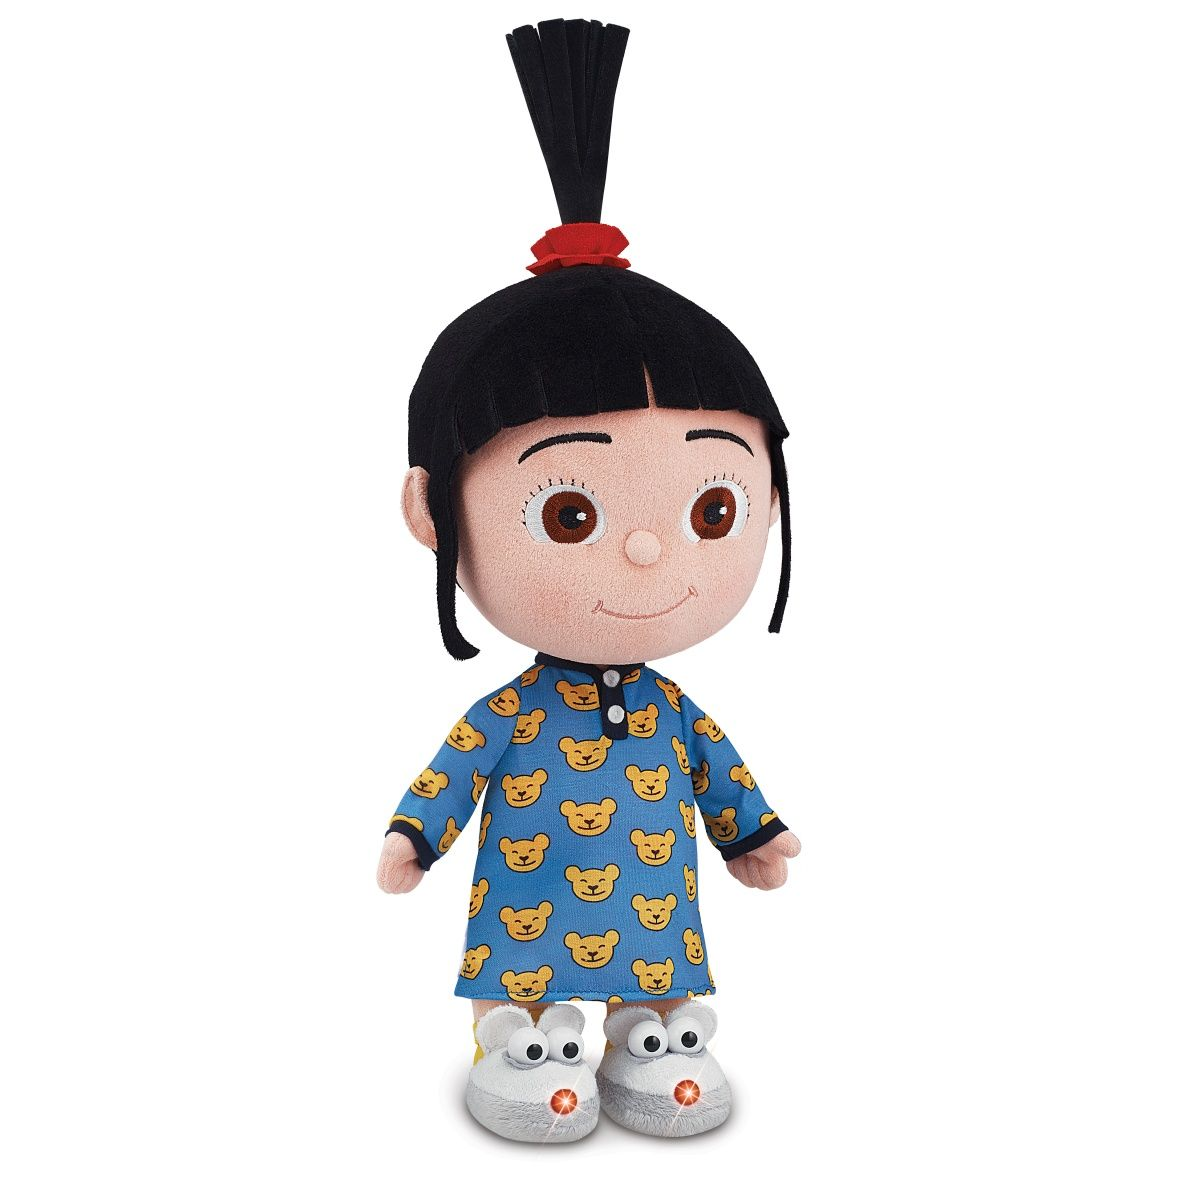 Despicable Me 2 Bedtime Agnes Plush - Smyths Toys | Everythings ...